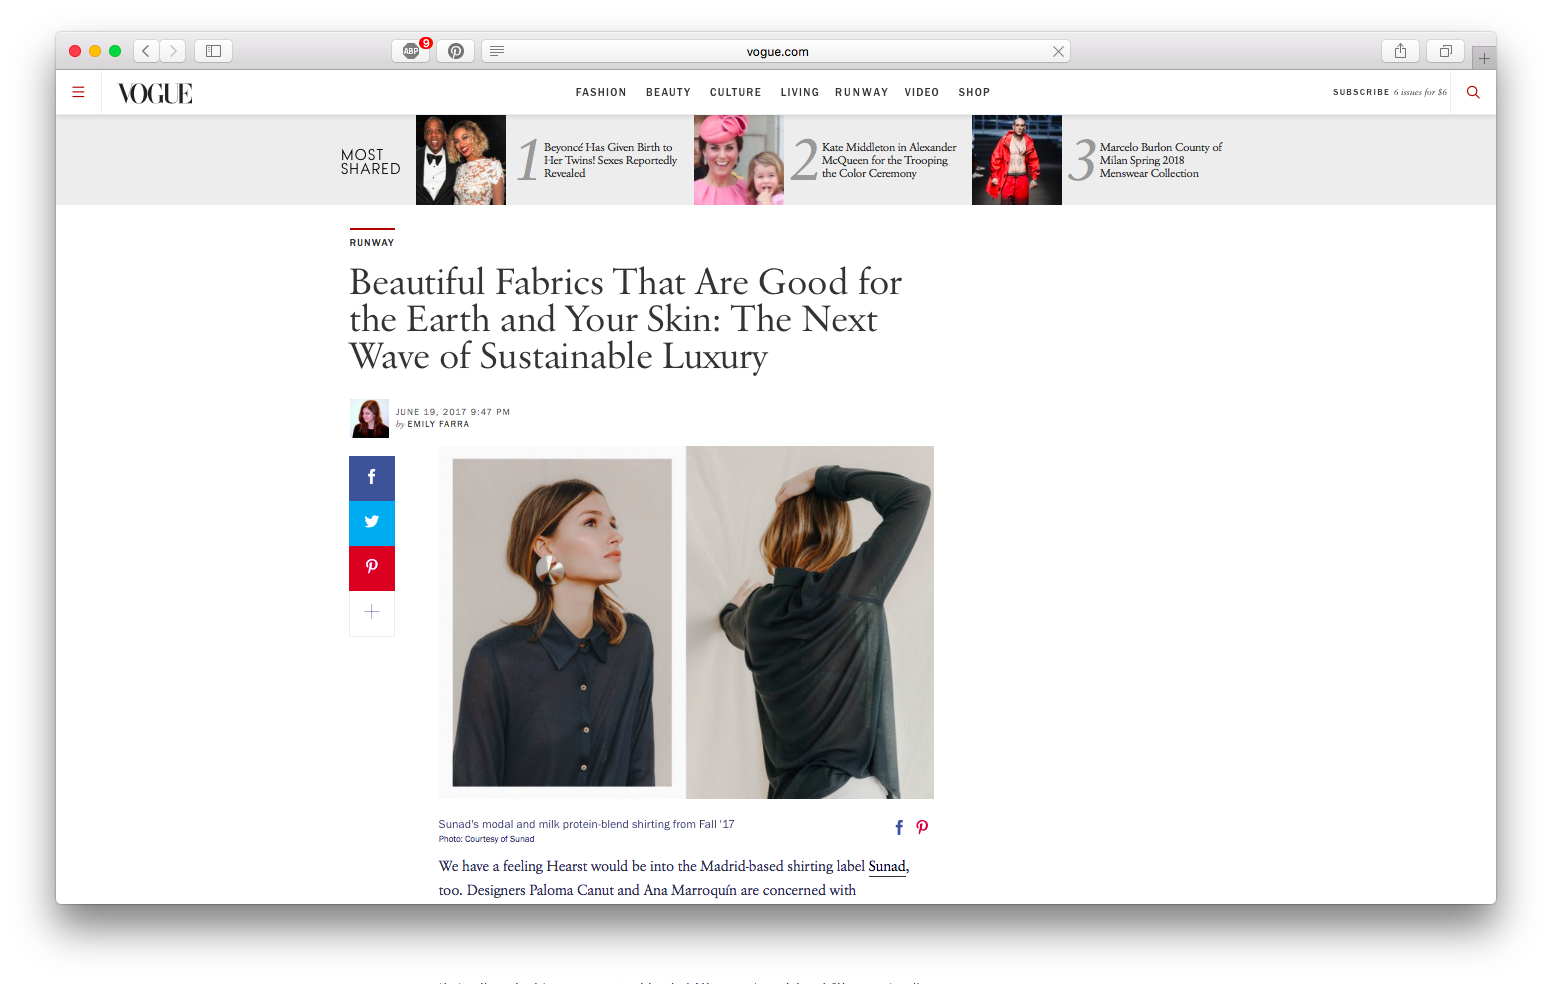 Our AW17 Kalahari Basalt made with 60% modal and 40% milk protein featured in  Vogue.com